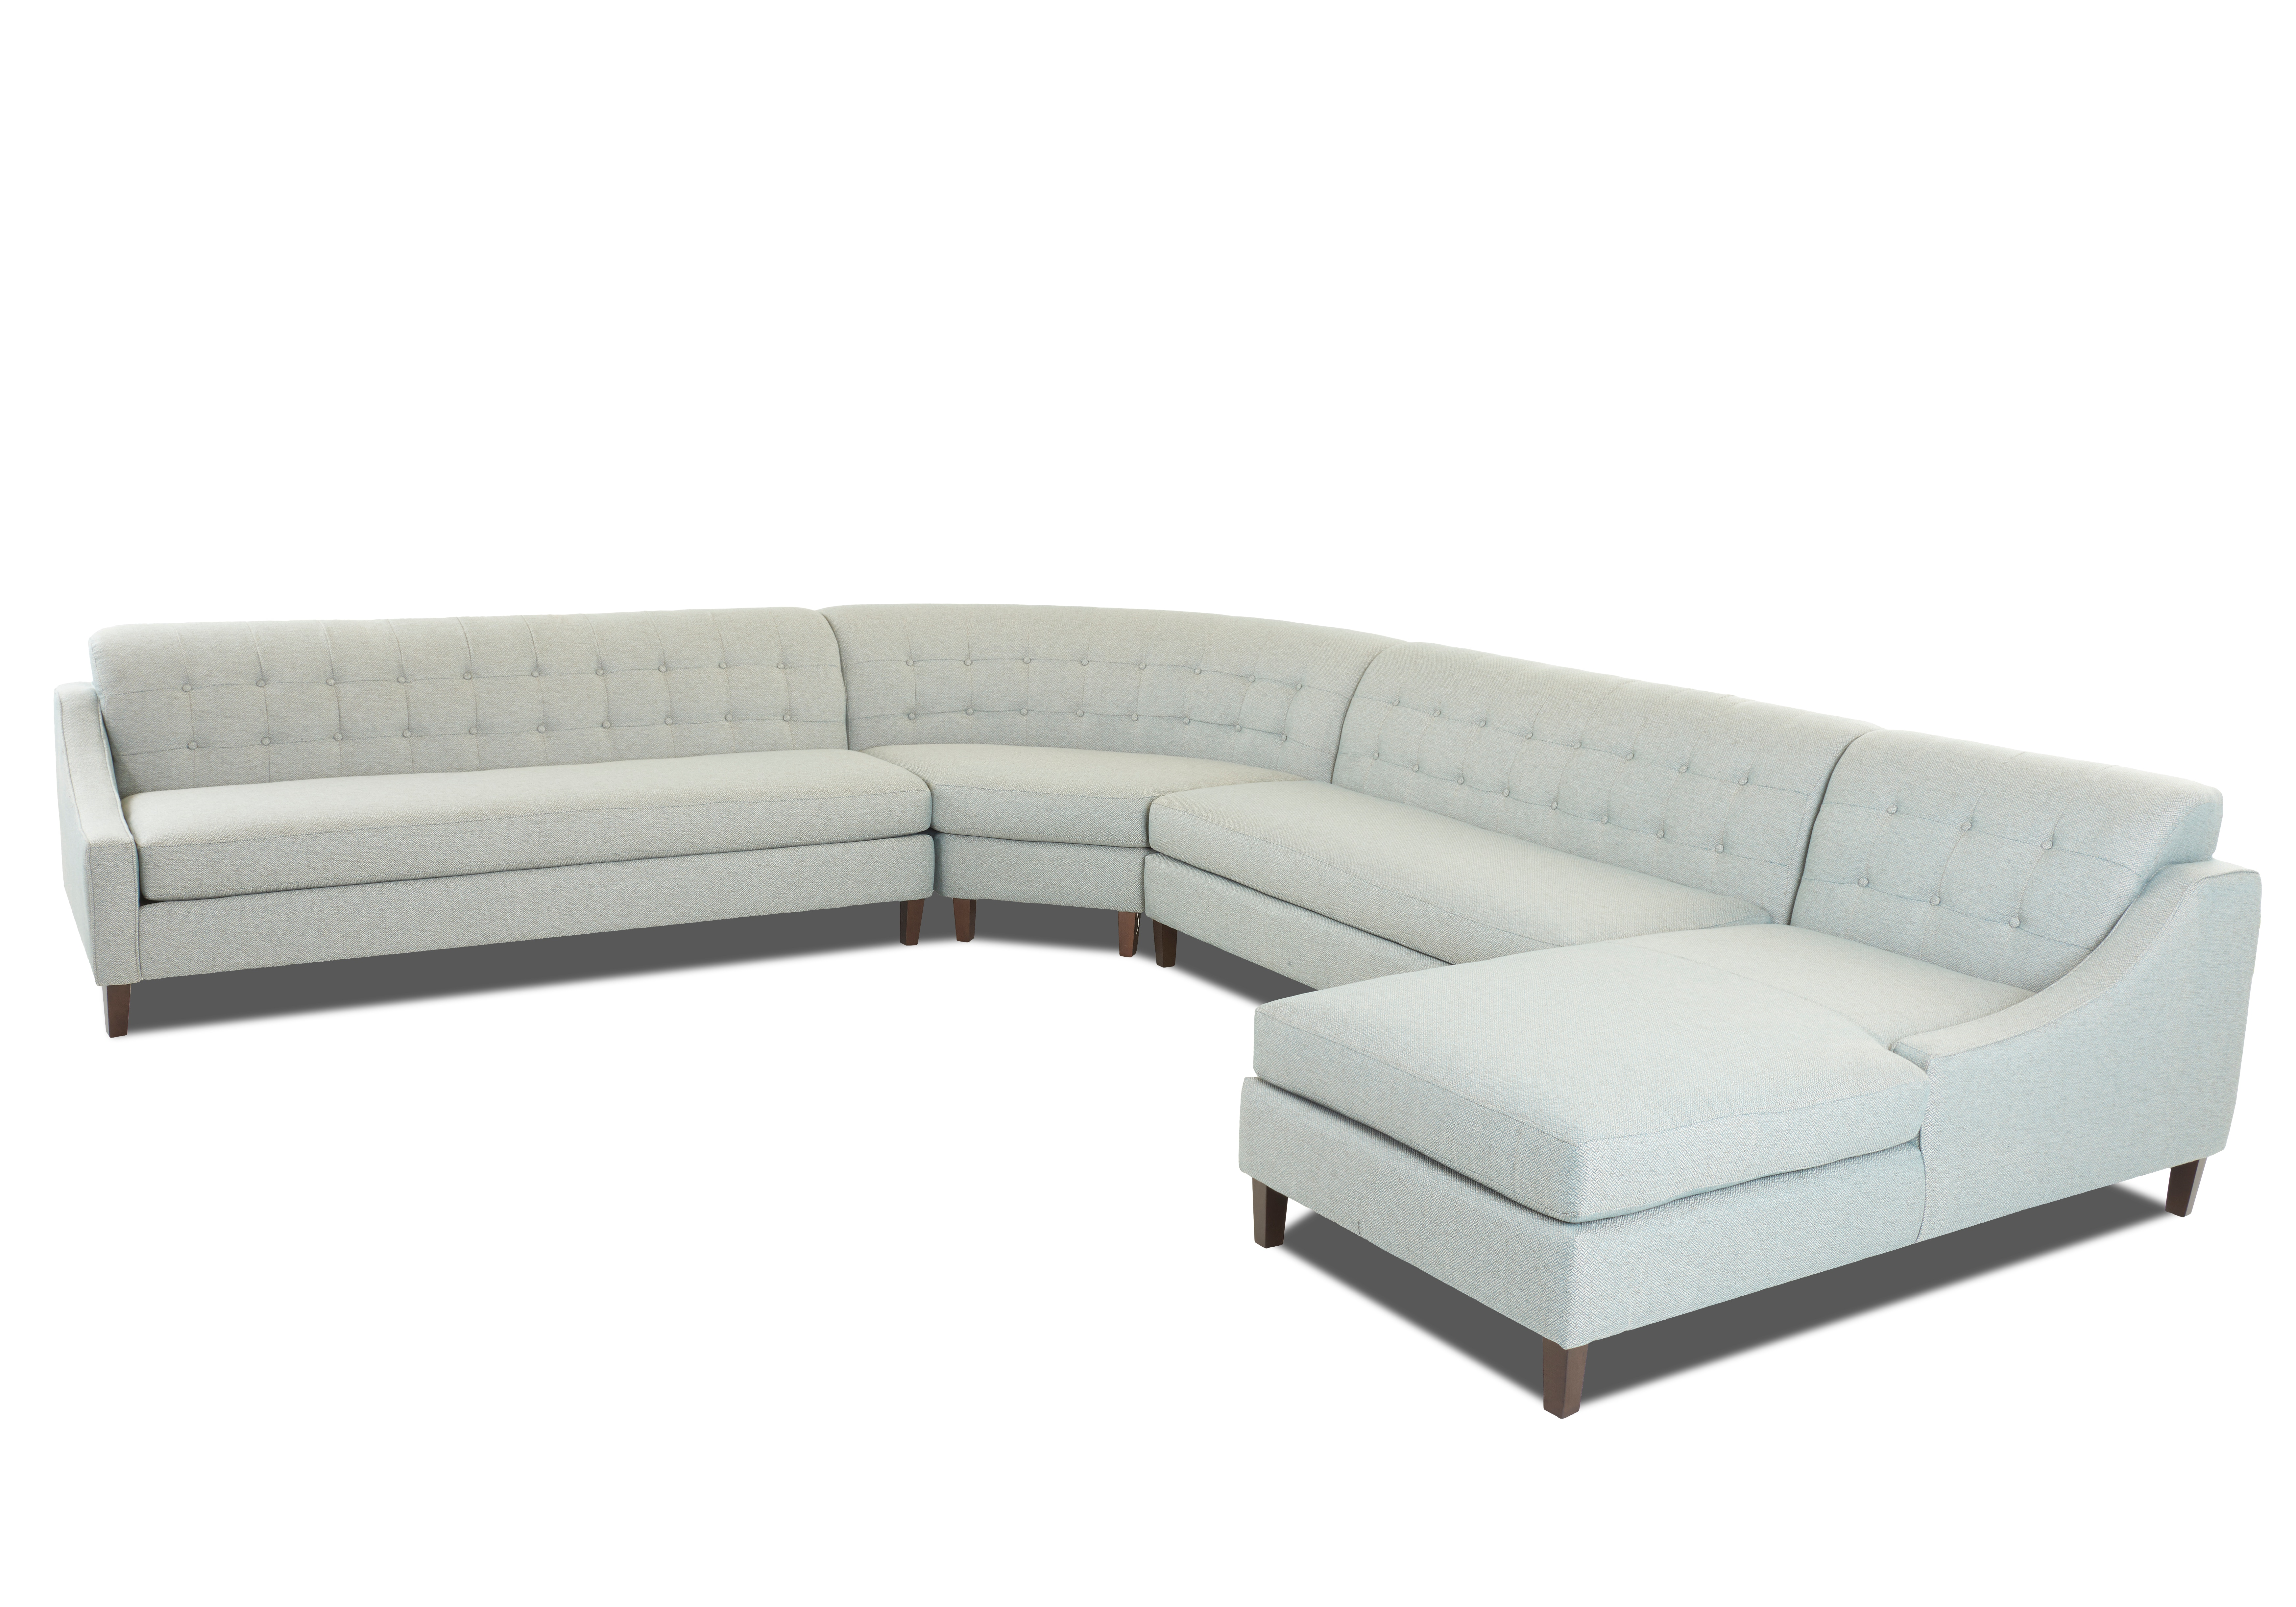 Dwell Walden Sectional G1000 SECT